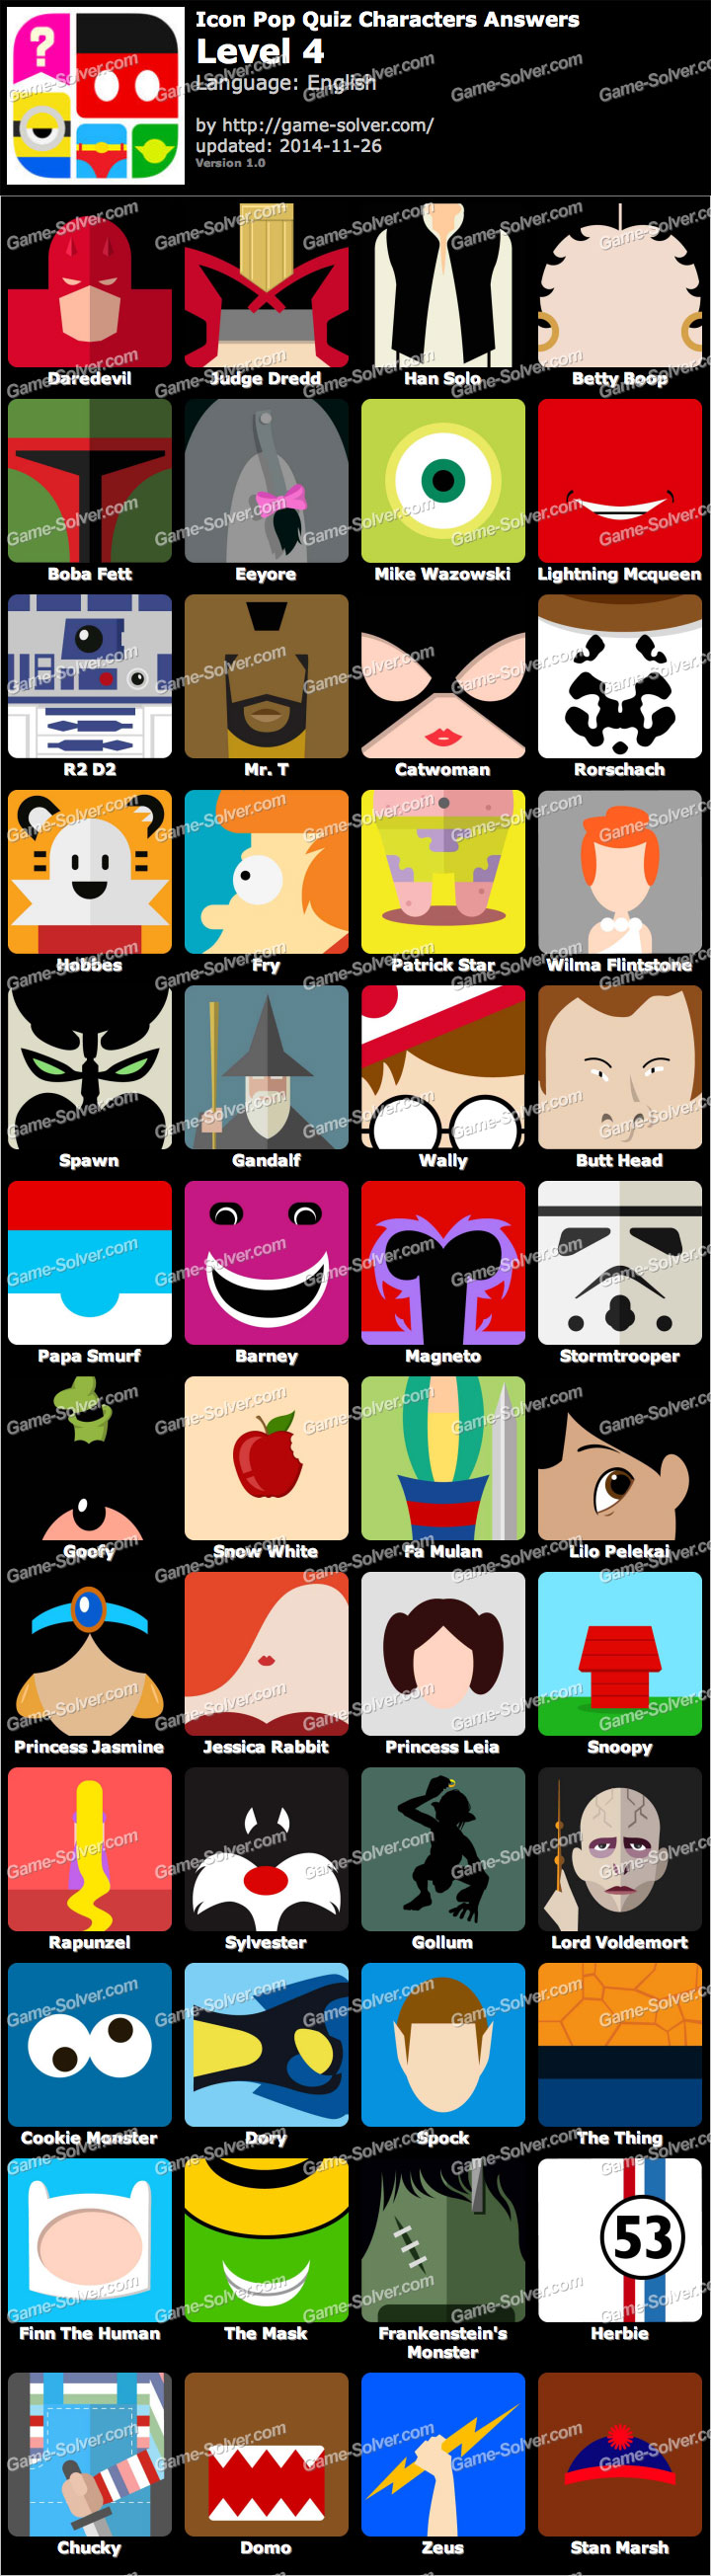 Icon Pop Quiz Characters Level 4.